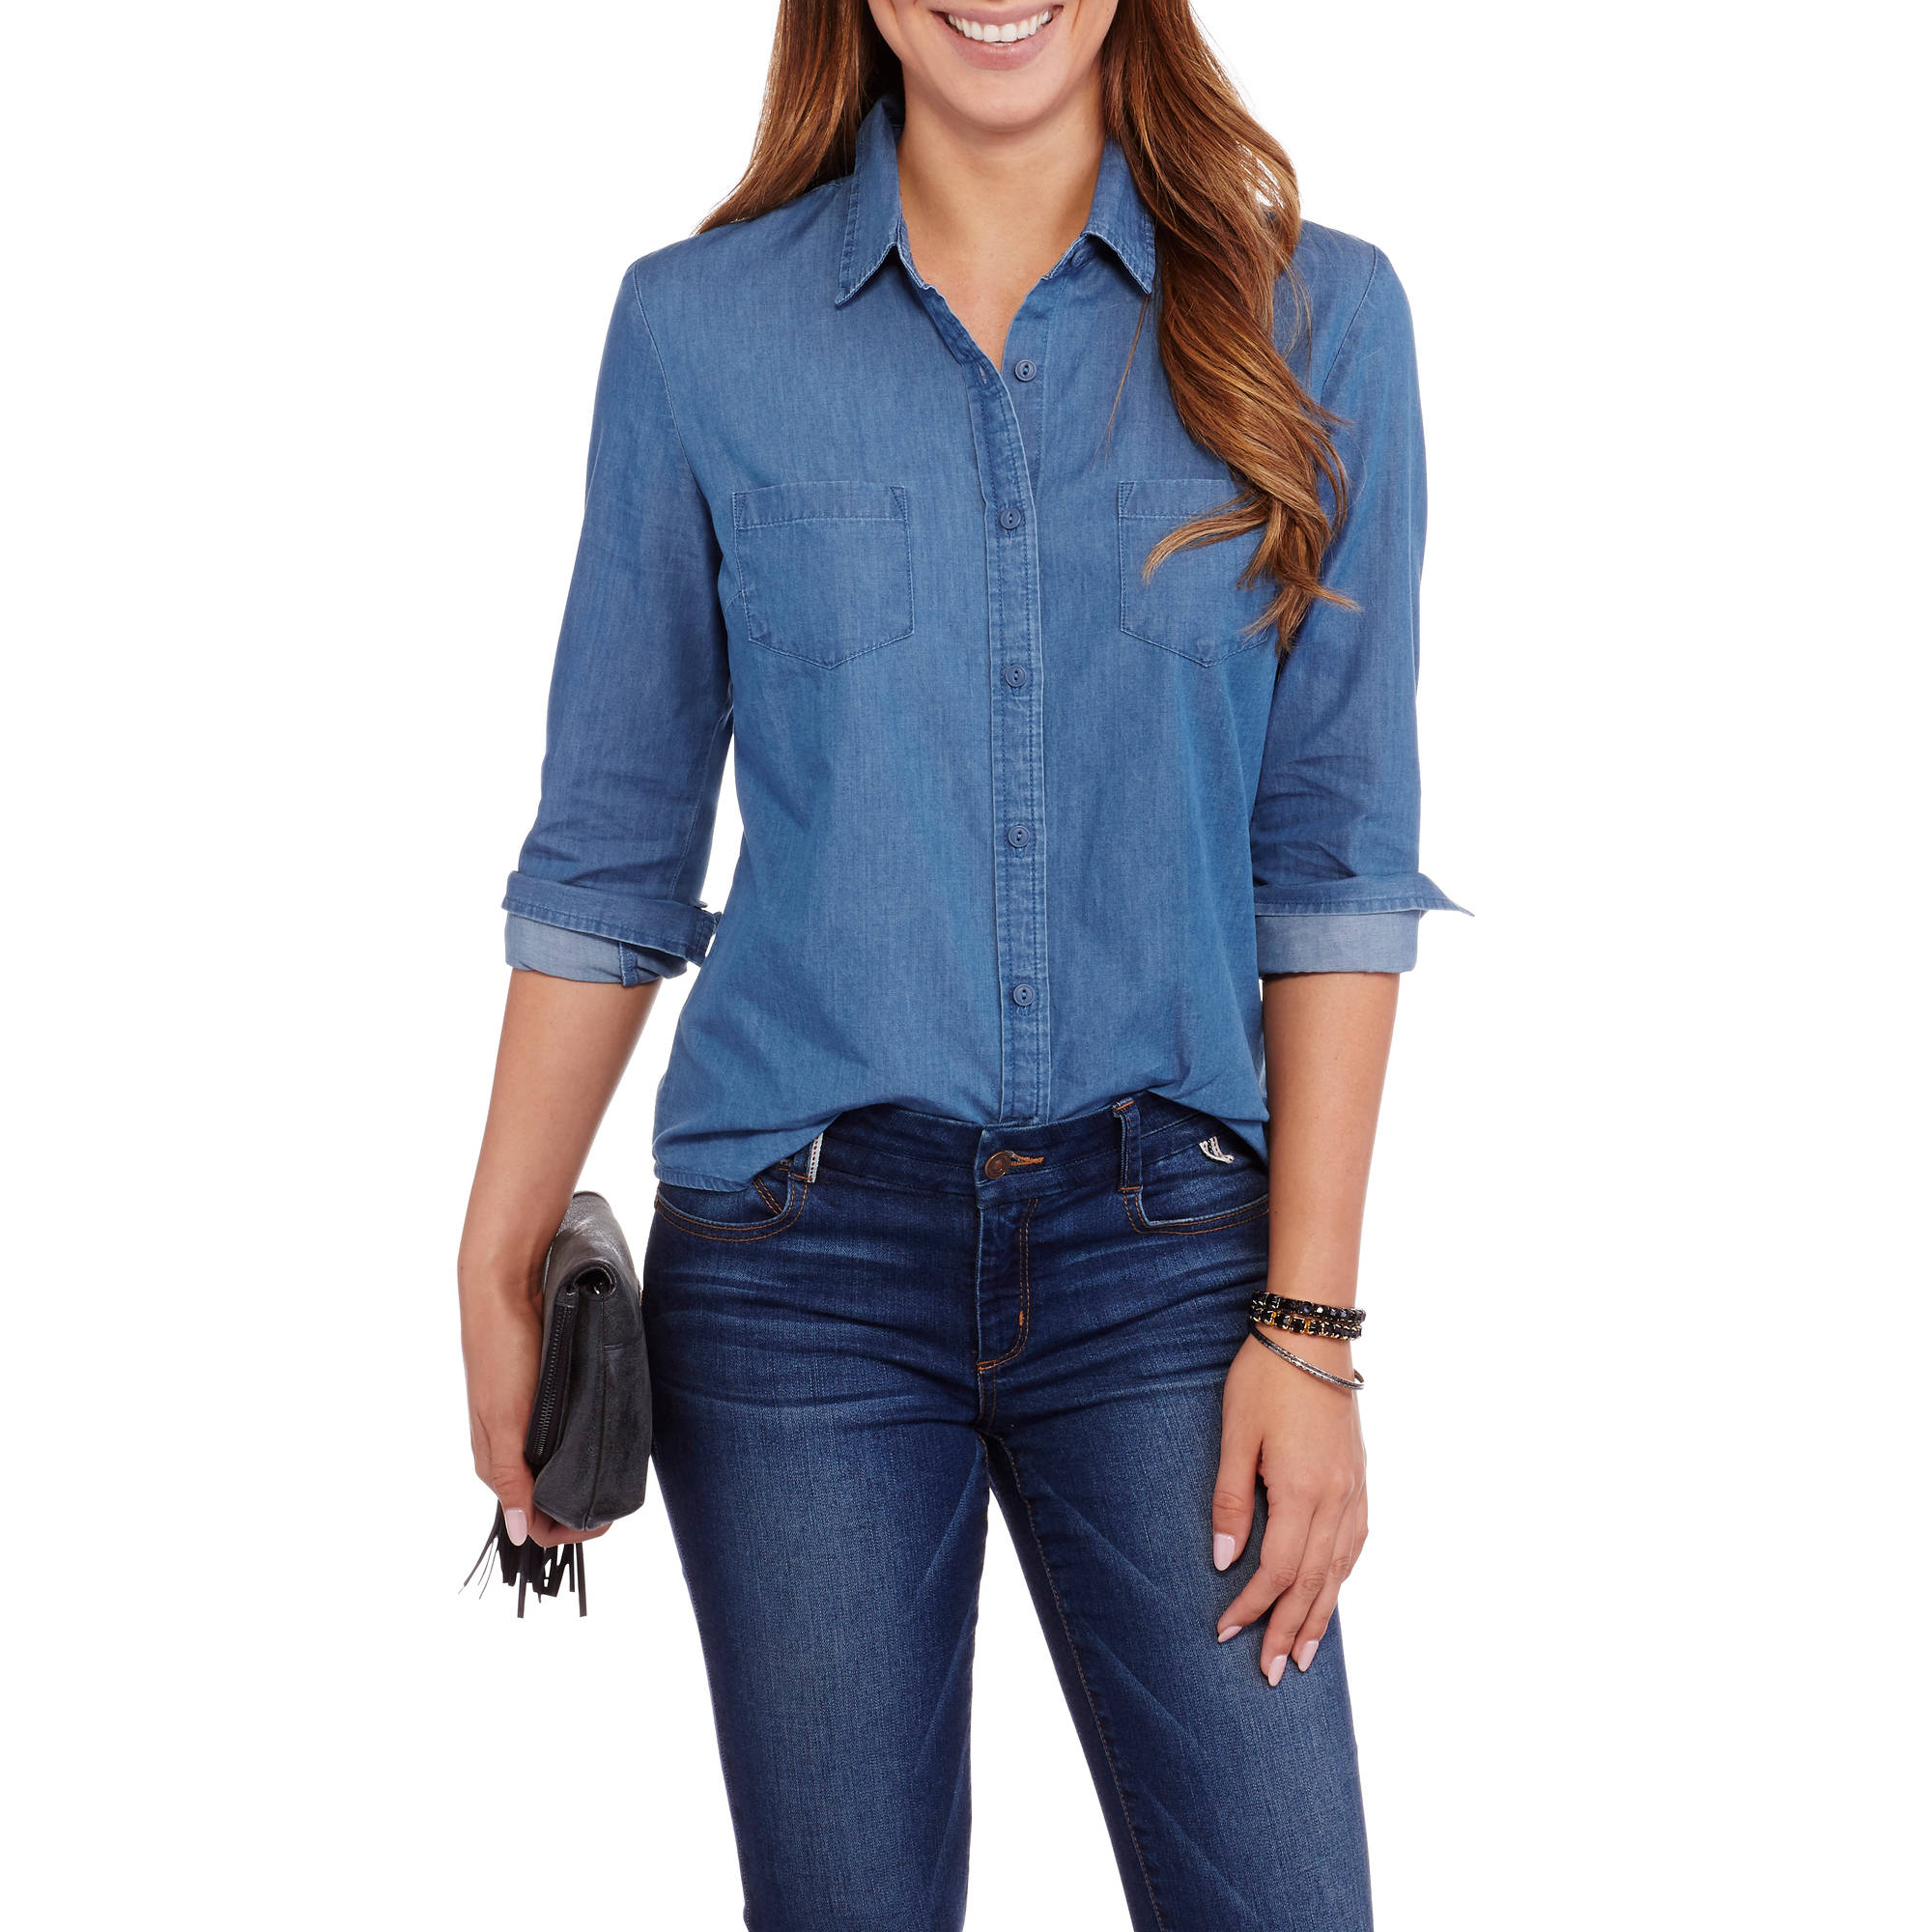 Your favorite women's clothing brands are at Dillard's. Shop Dillard's for casual, athletic, dressy or formal wardrobe needs, in regular, plus or petite sizes.